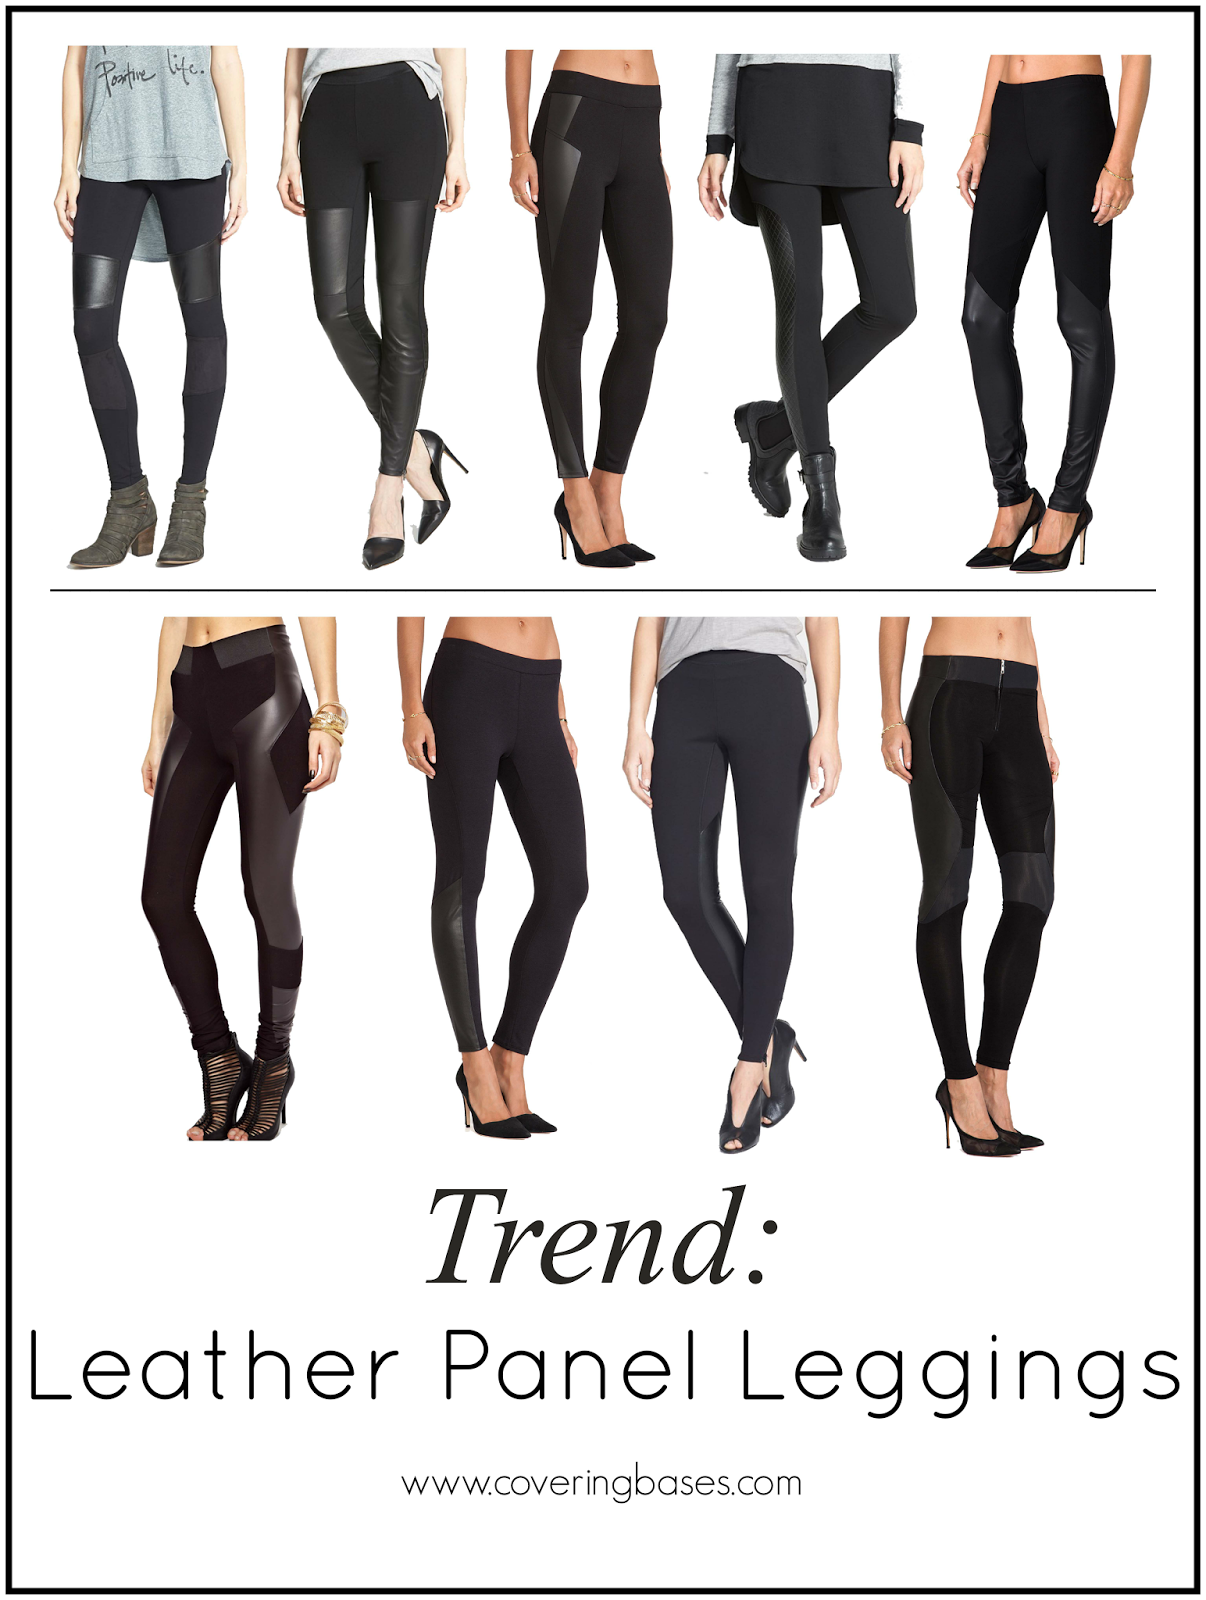 Fashion Trend, Leather Panel Leggings